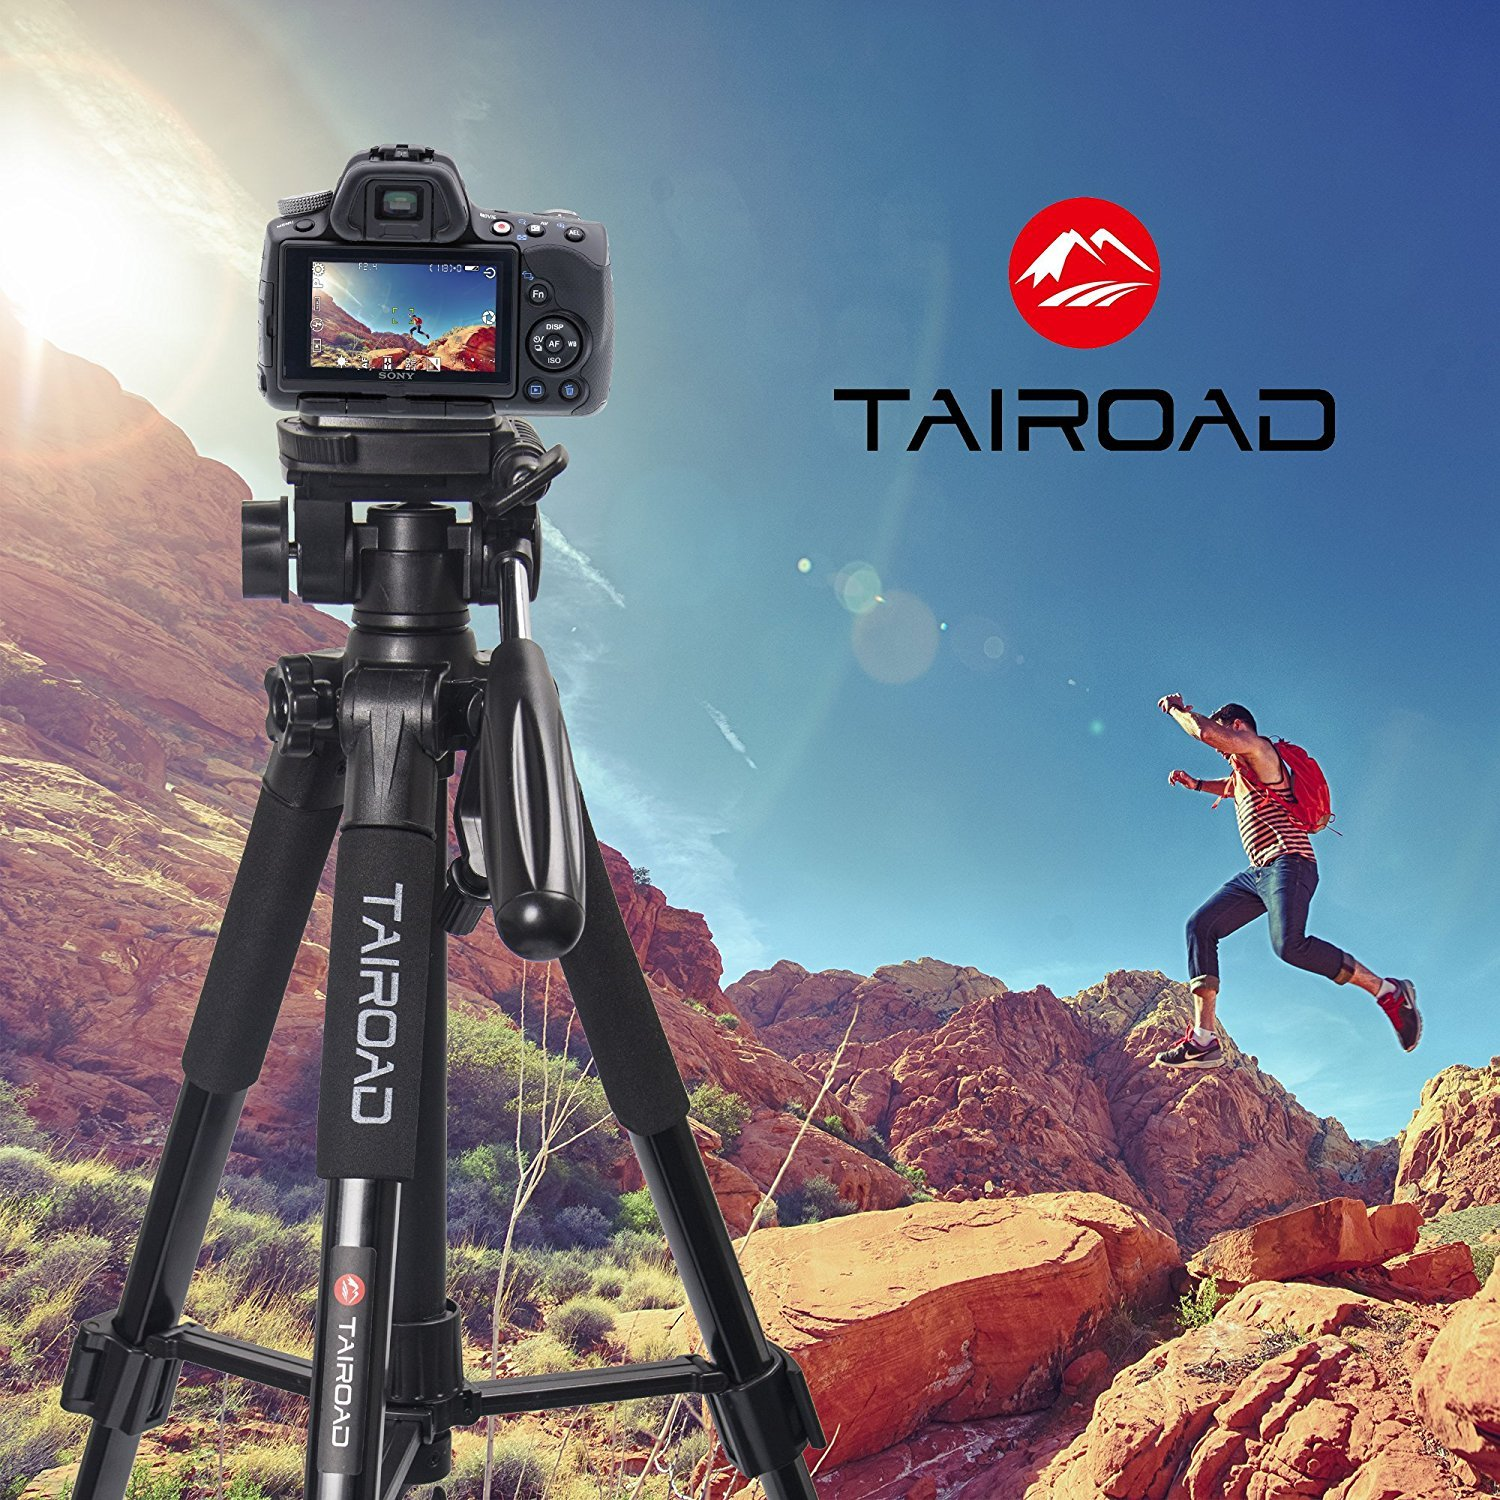 Tairoad Lightweight Tripod Compact Light Tripod with Ball Head and Quick Release Plate for Digital SLR Canon EOS Nikon Sony Panasonic Samsung Black